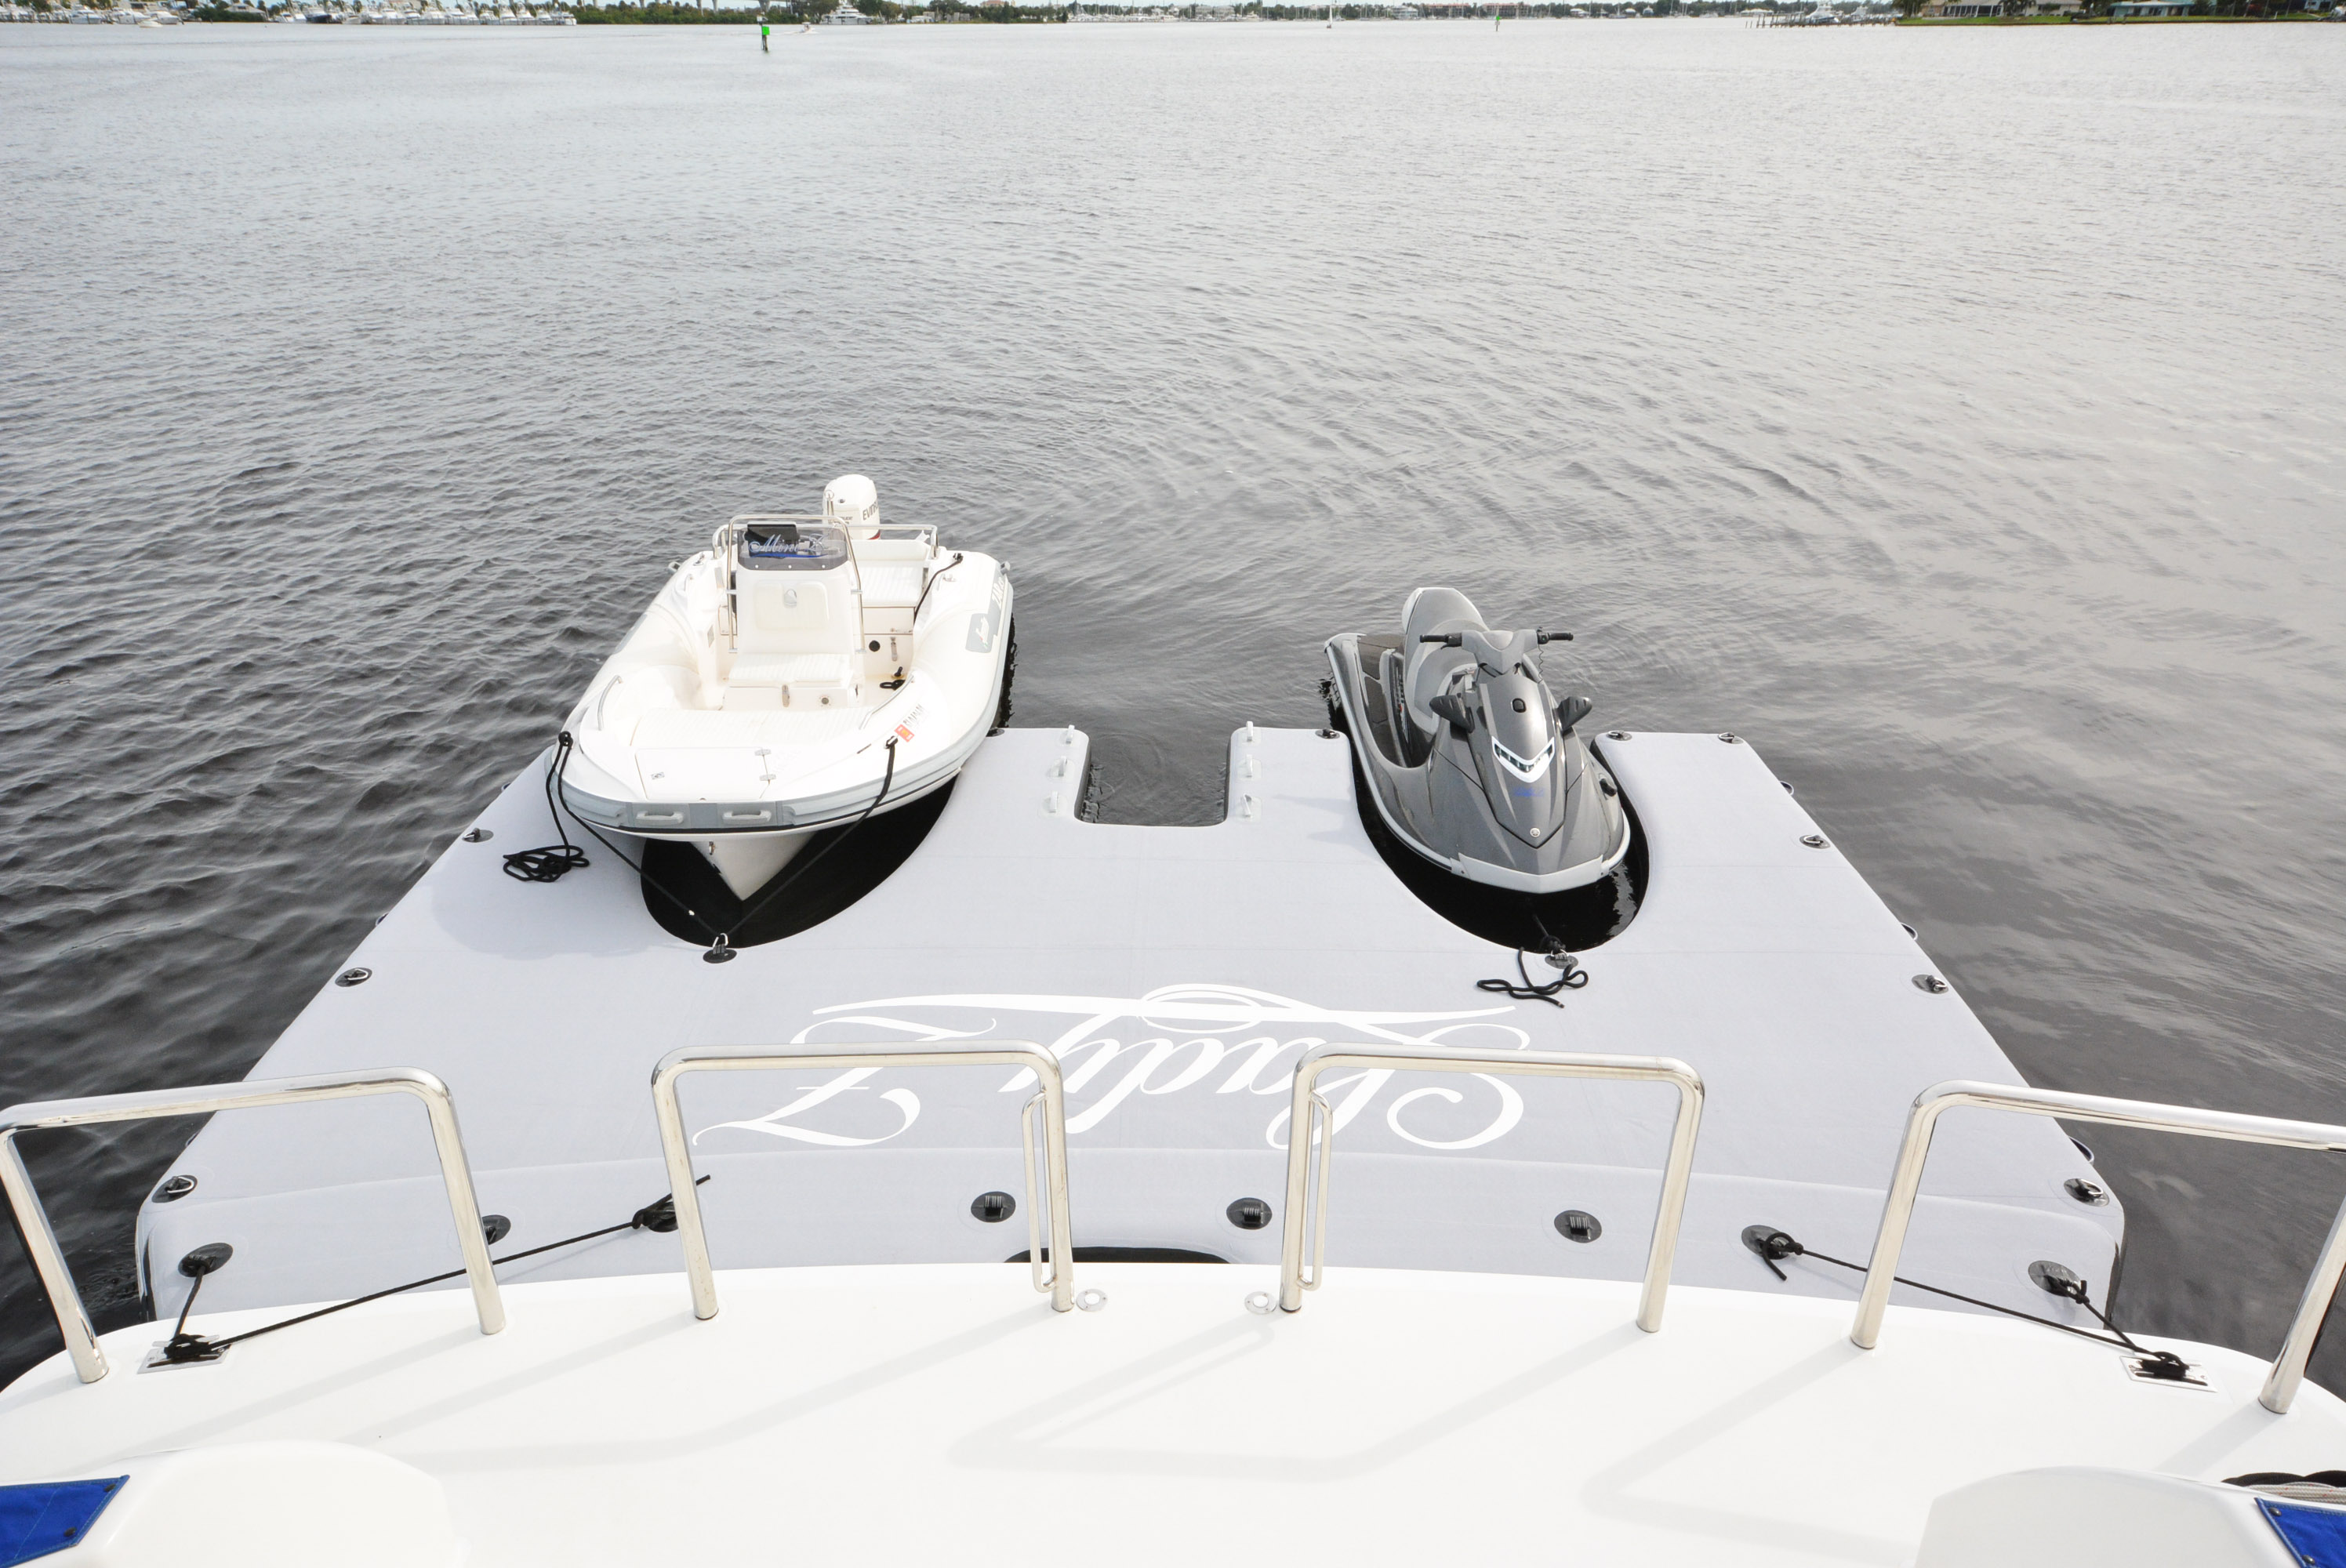 LADY Z Yacht Charter Details Westport Charter boat